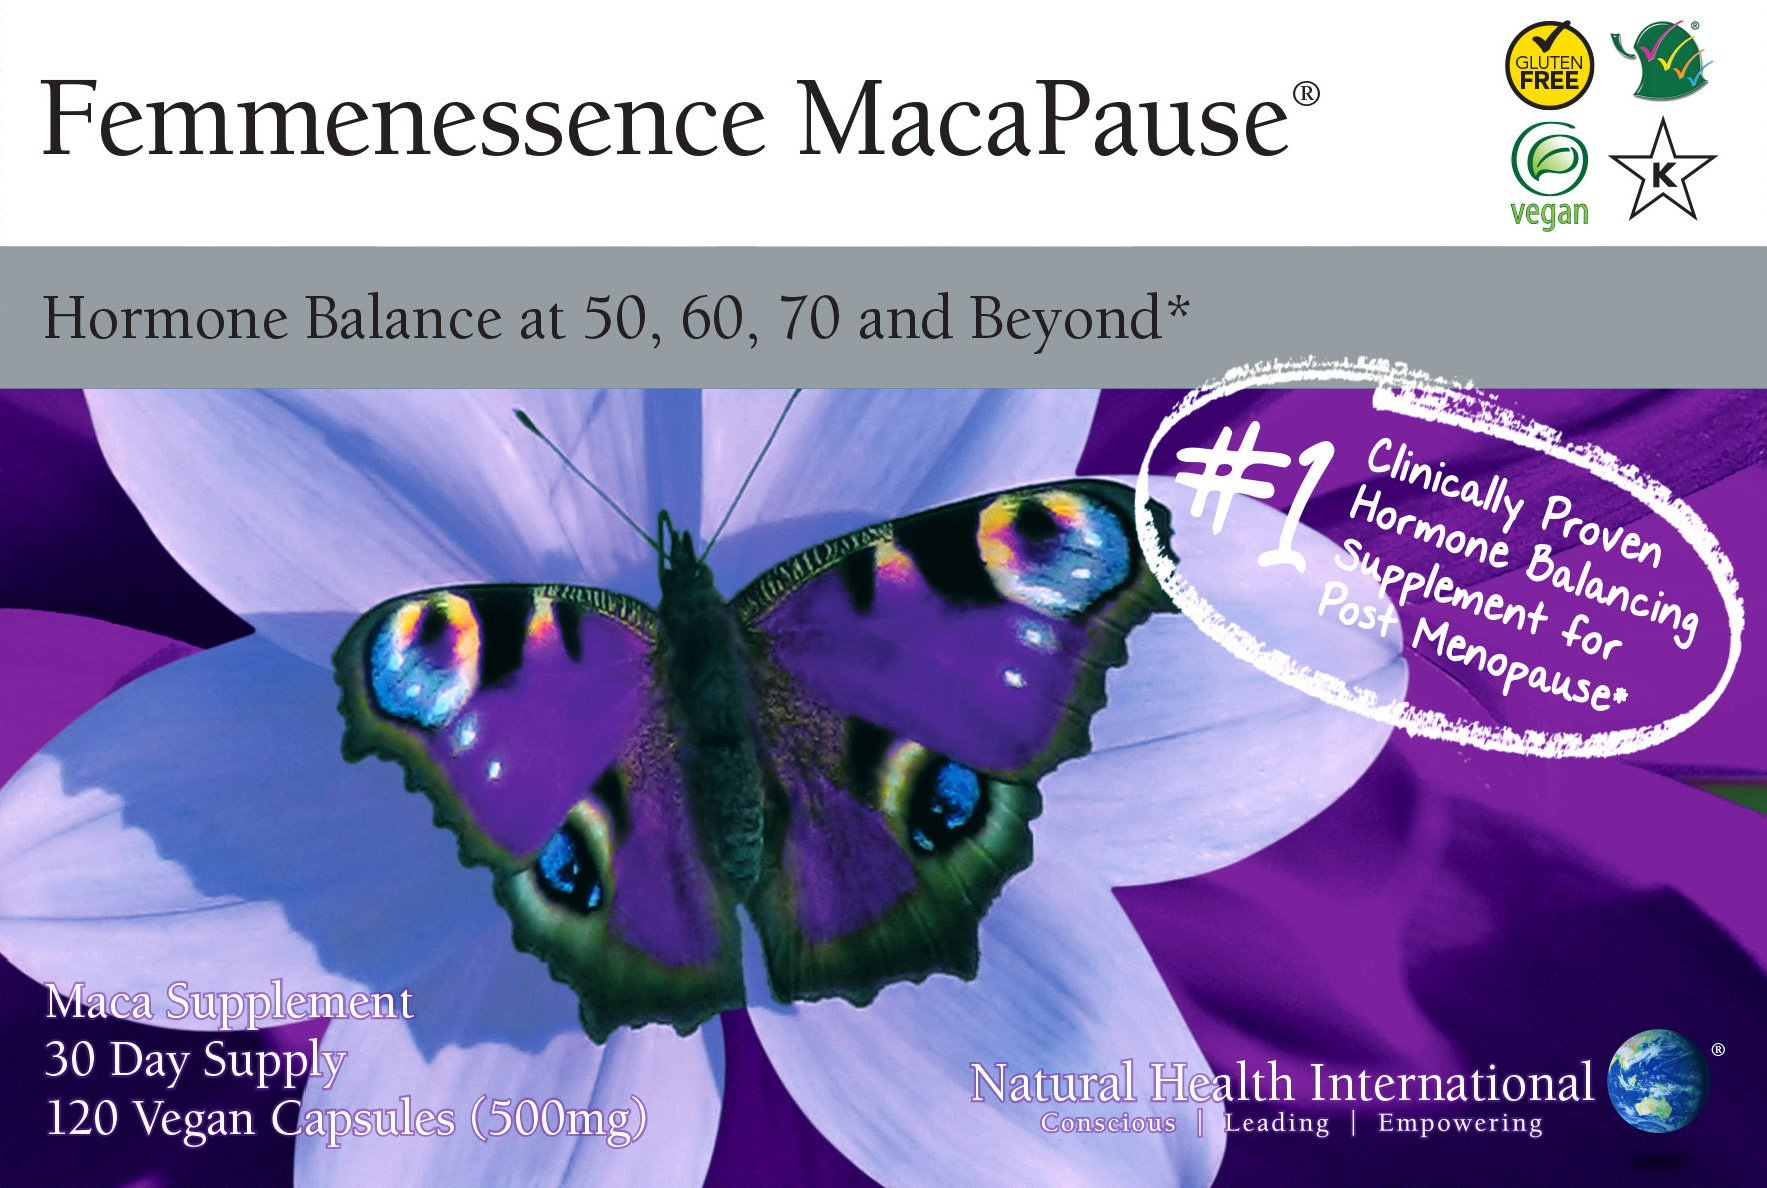 Femmenessence MacaPause - Hormone balance for women 50, 60, 70 and beyond